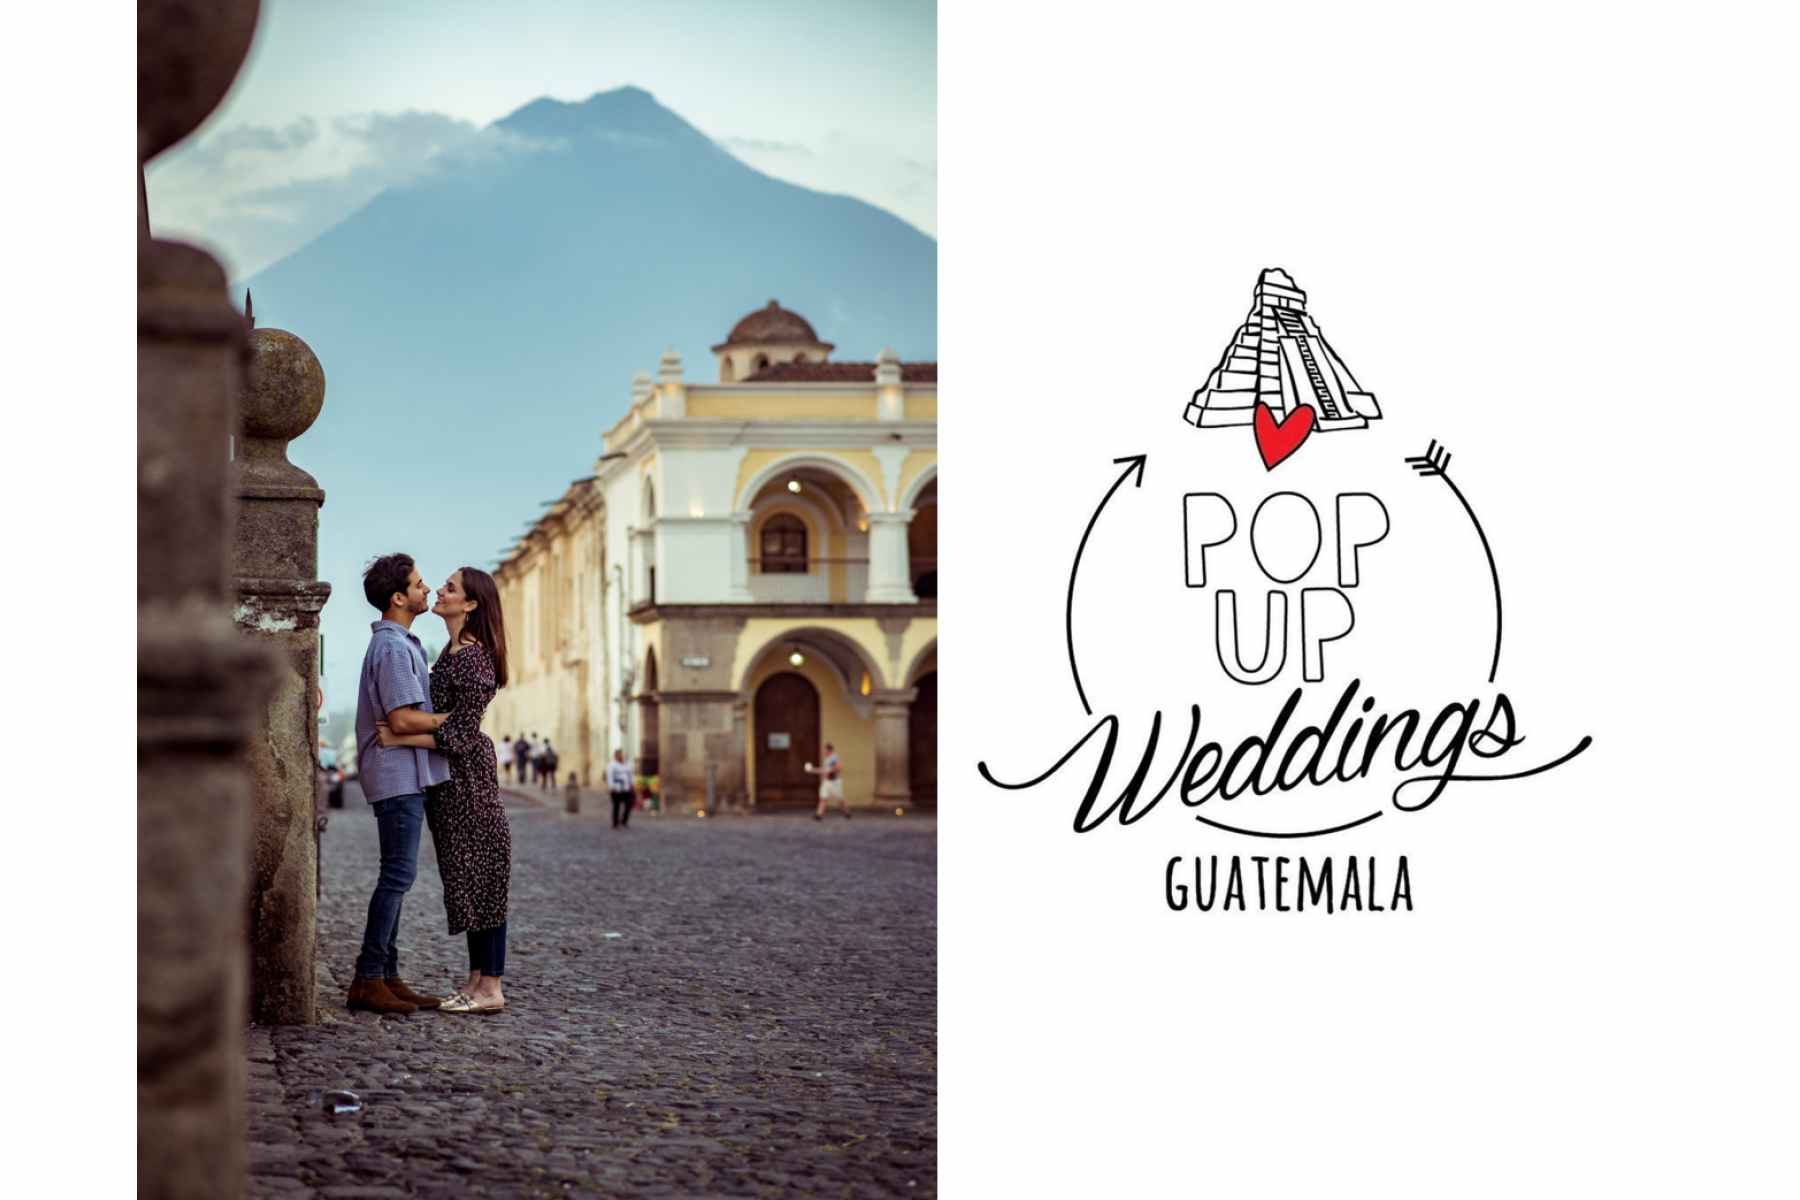 POP UP WEDDING IN GUATEMALA